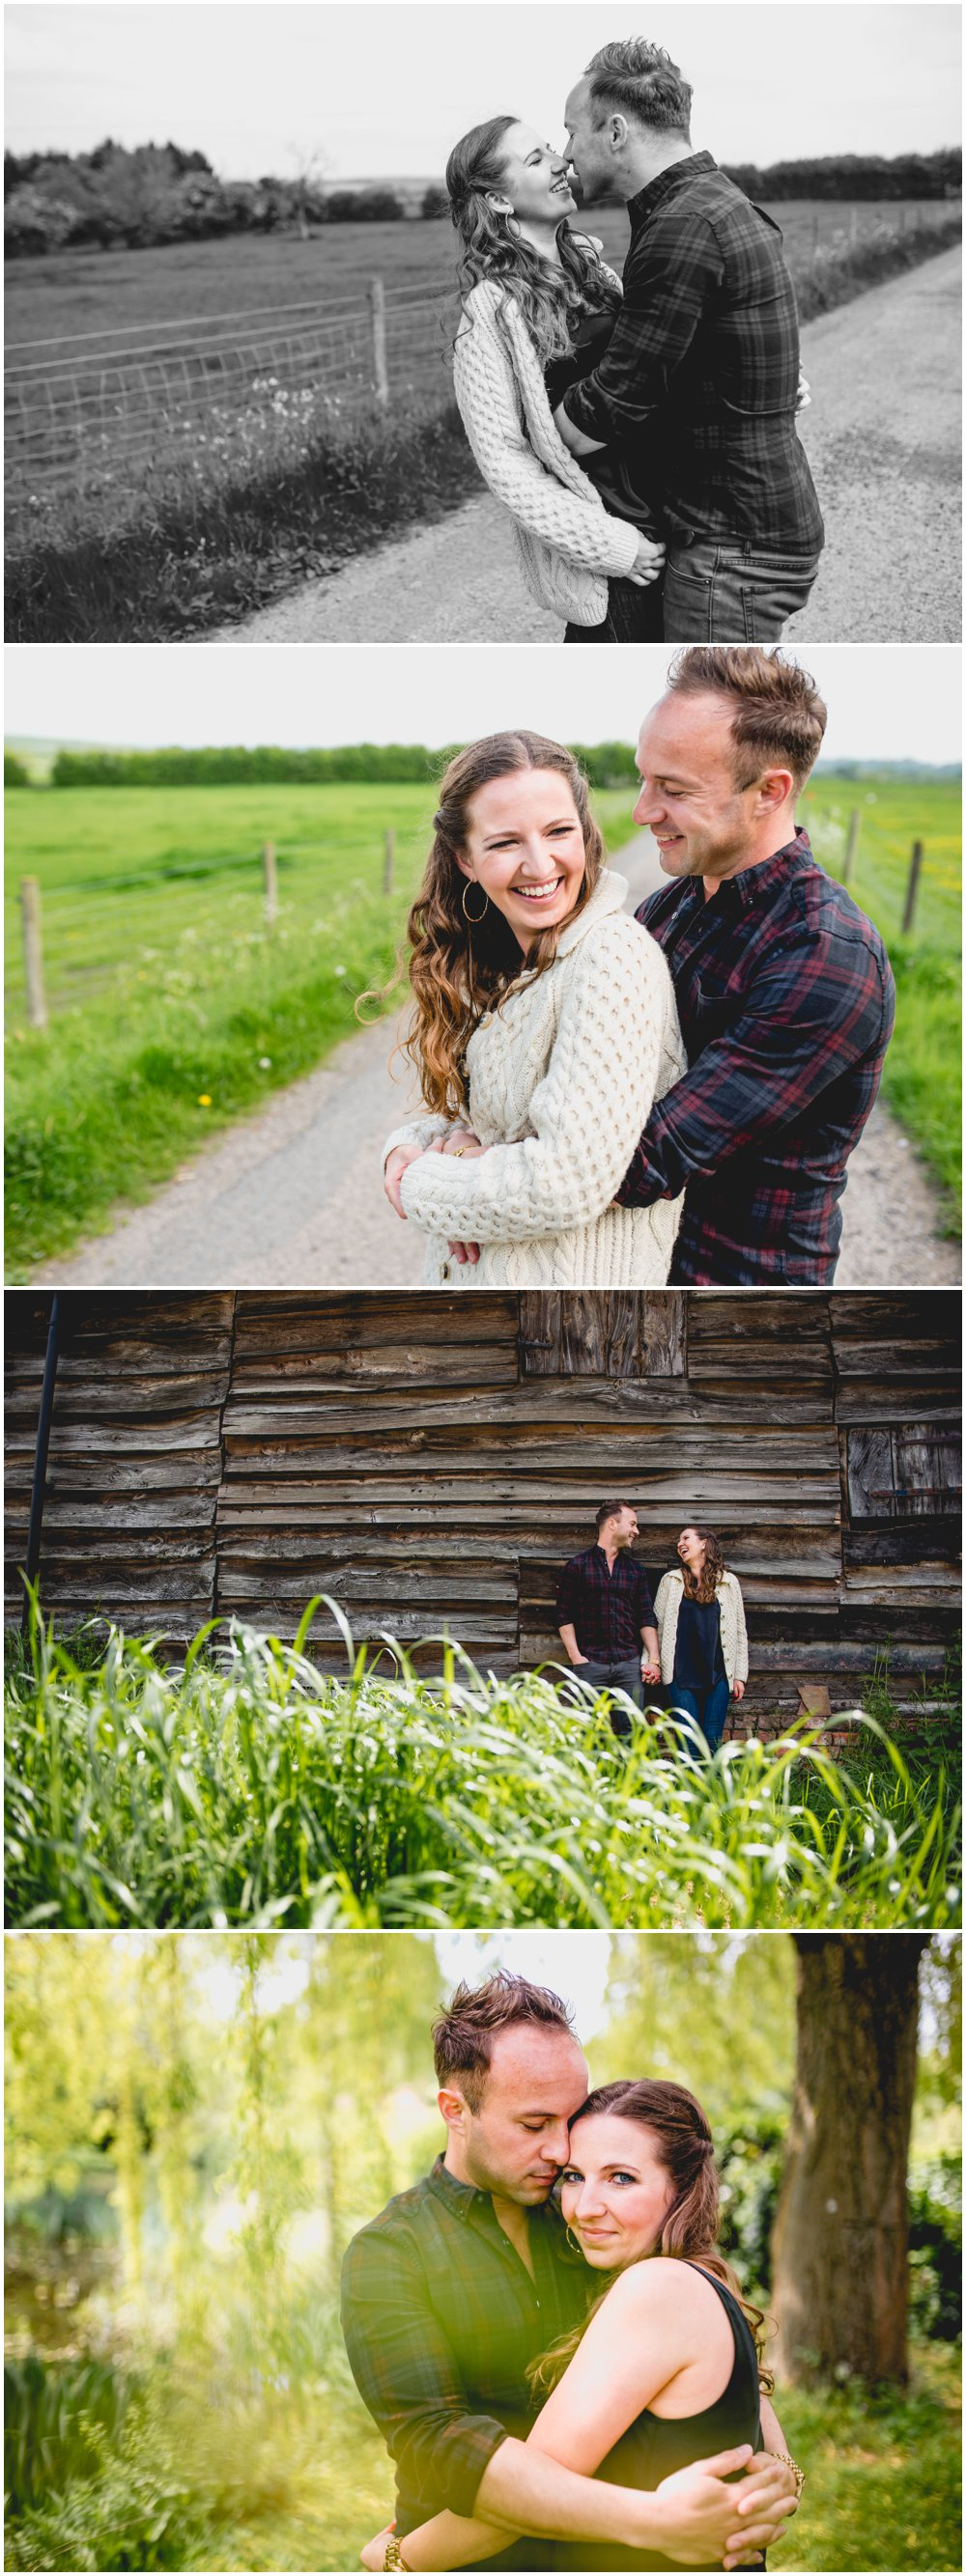 Sarah and Tom, countryside engagement shoot in Pershore West Midlands by Lisa Carpenter Photography, Birmingham based wedding photographer, specialising in relaxed, fun wedding photography